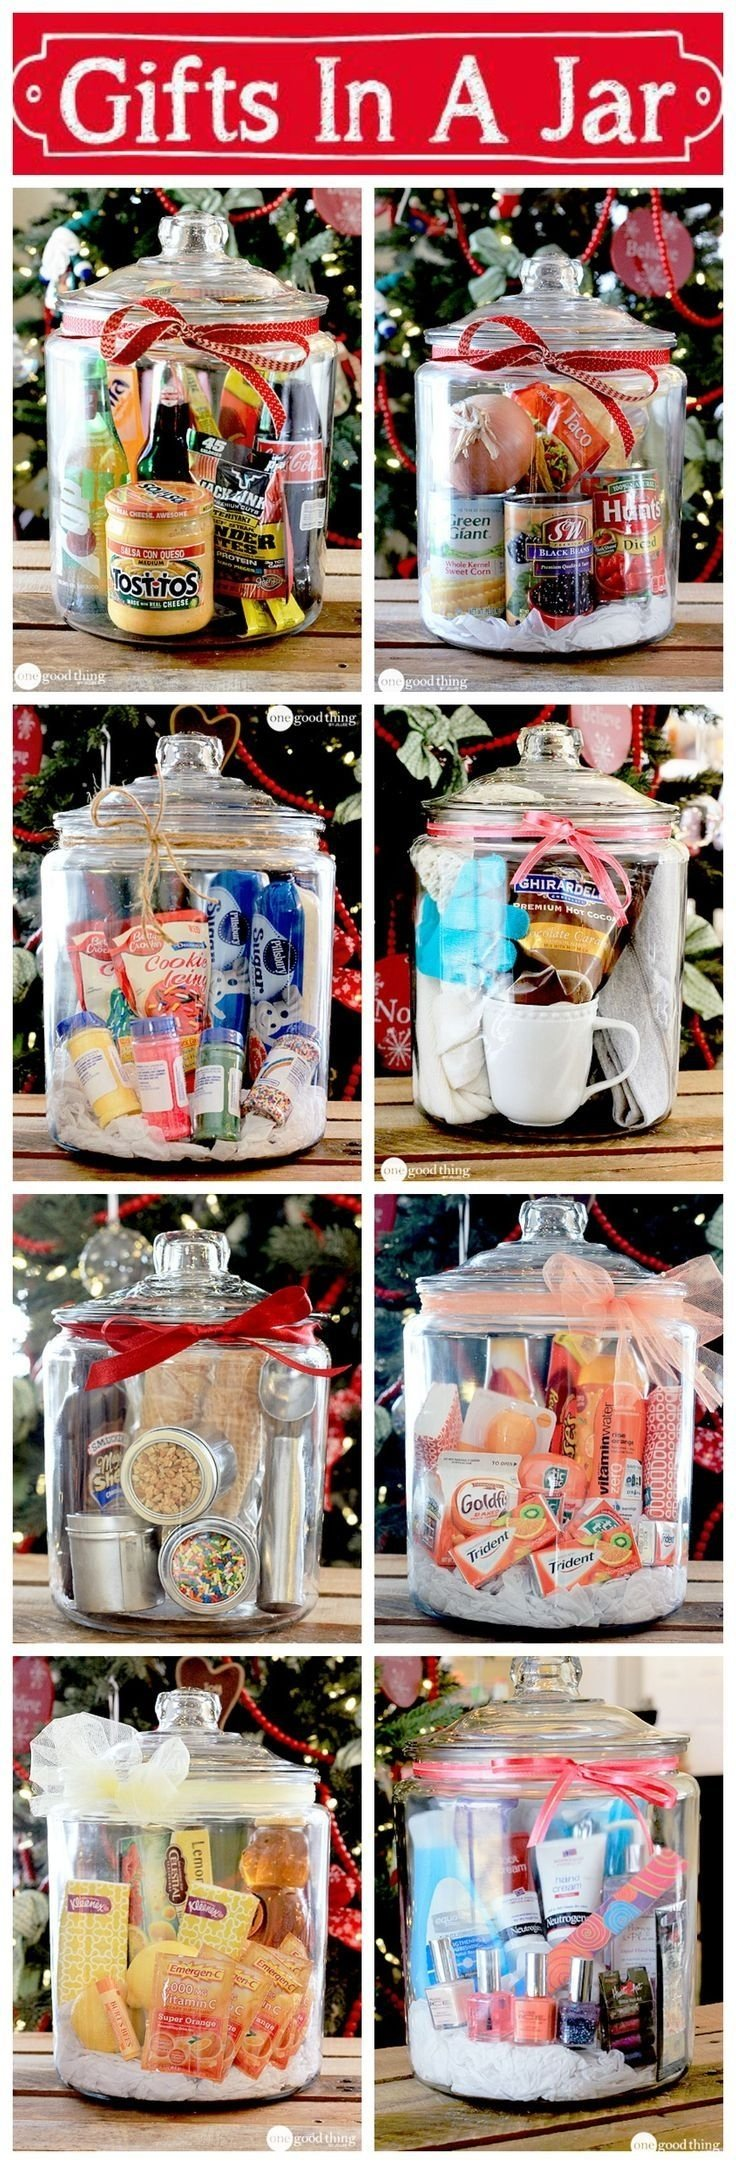 10 Beautiful Unique Christmas Gift Ideas For Couples 115 best christmas gift ideas images on pinterest christmas 1 2021